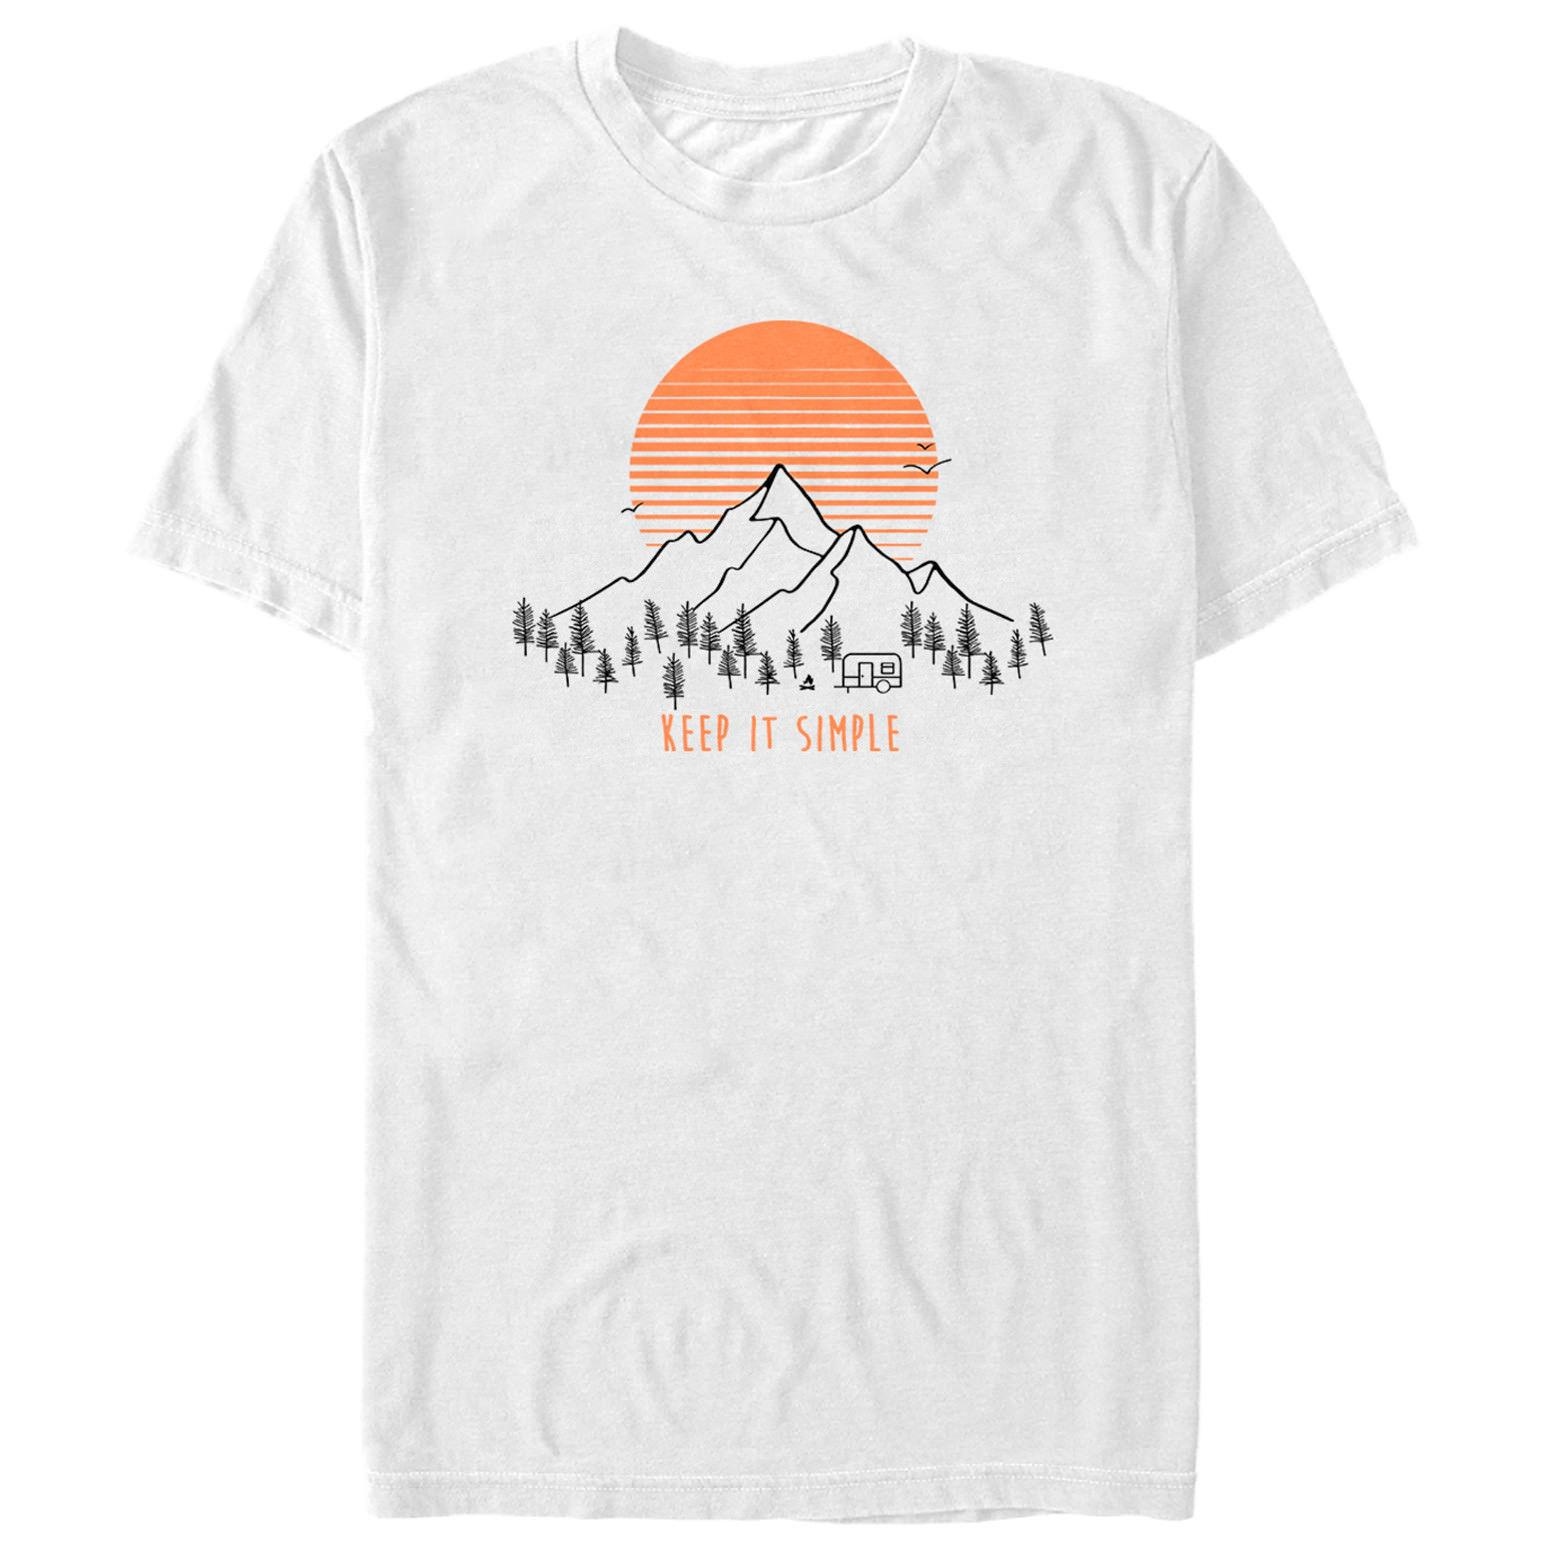 03026fa443 Lost Gods Keep It Simple Mountain Mens Graphic T Shirt New Brand-Clothing  Top Tee Men T Shirt 2018 Summer Casual male tshirt